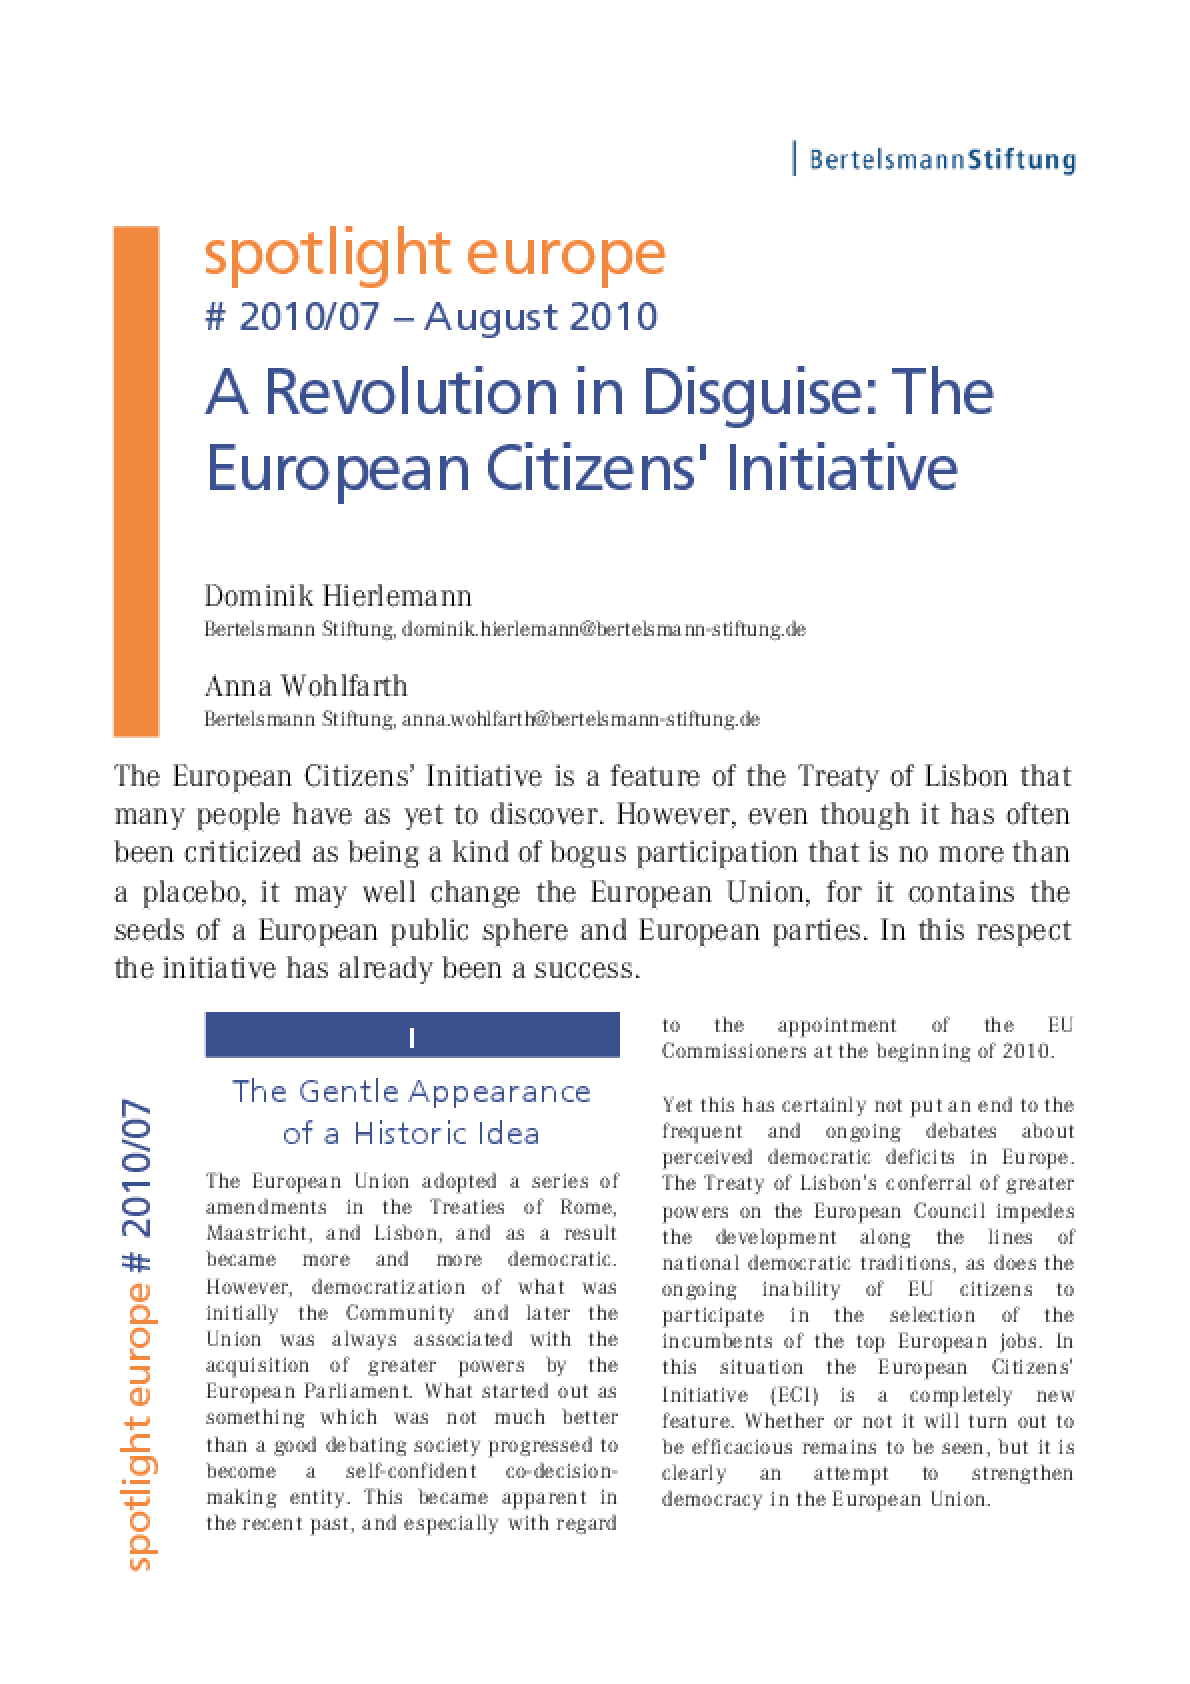 A Revolution in Disguise: The European Citizens' Initiative